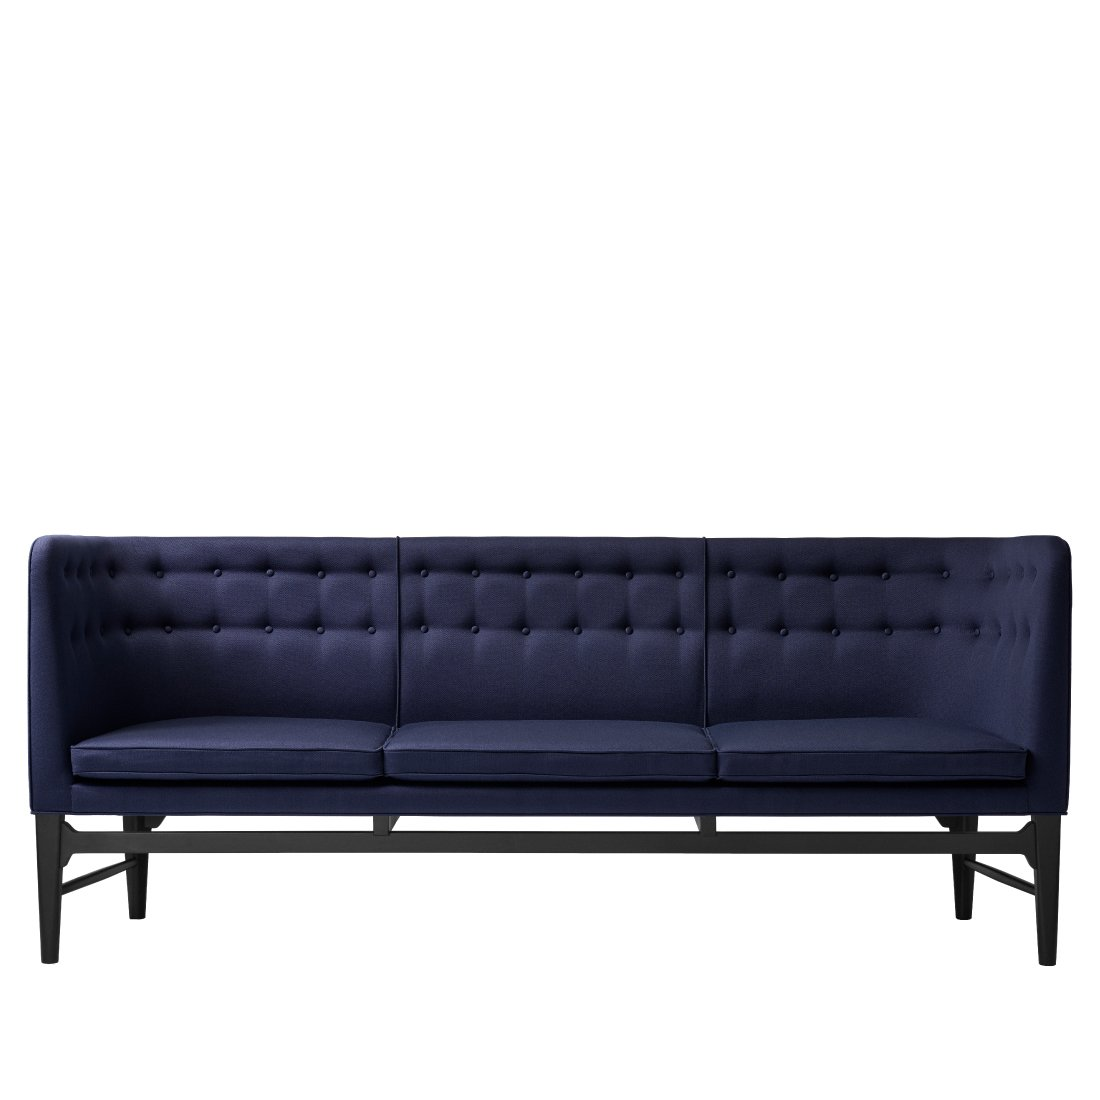 Mayor Sofa AJ5 Bank - &Tradition Balder 3 - 782